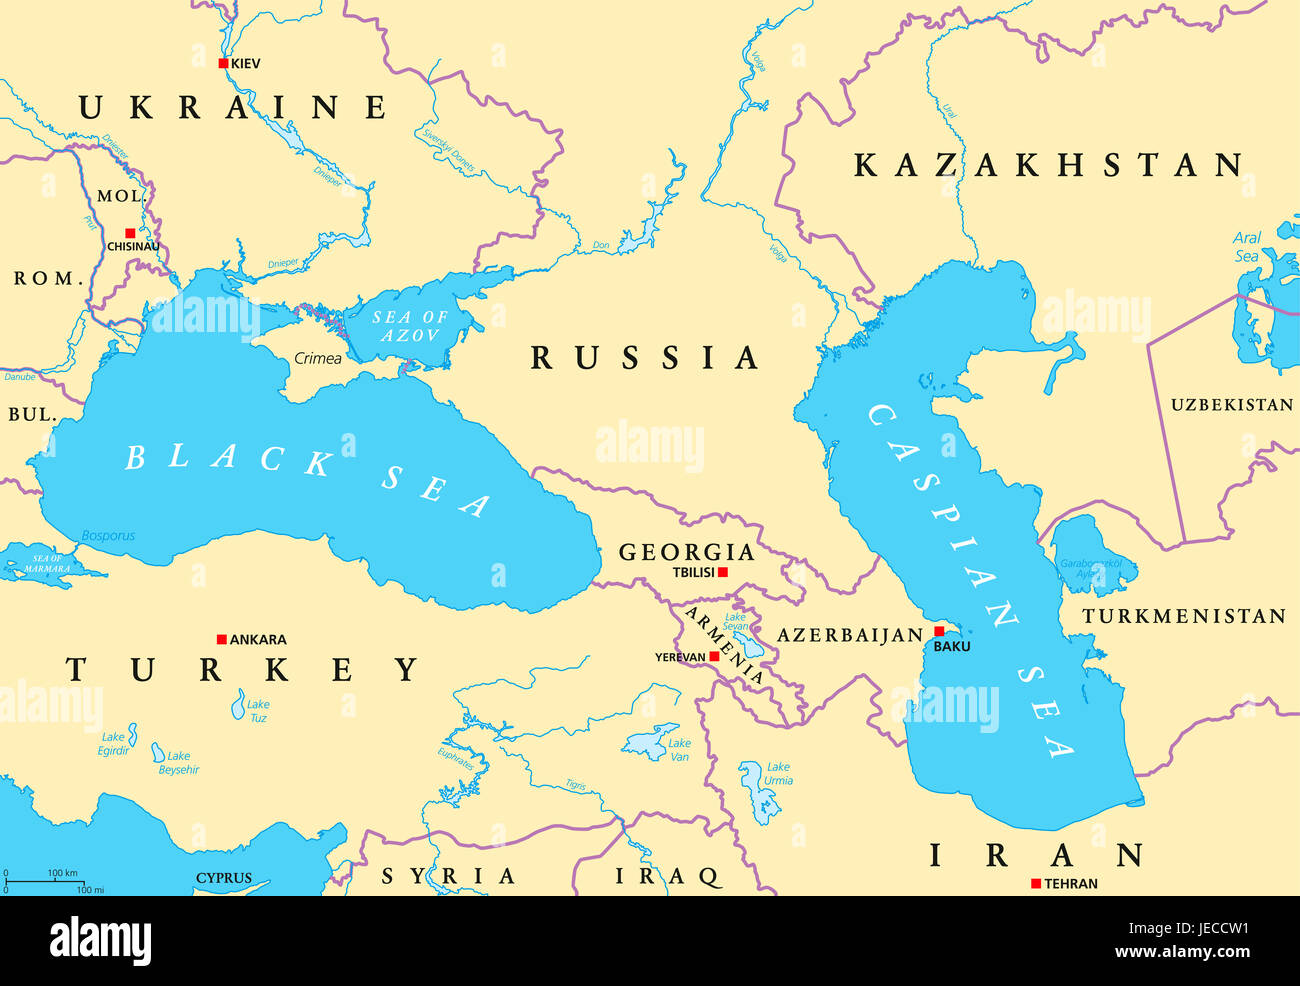 Caspian Sea On Map Black Sea and Caspian Sea region political map with capitals Stock  Caspian Sea On Map